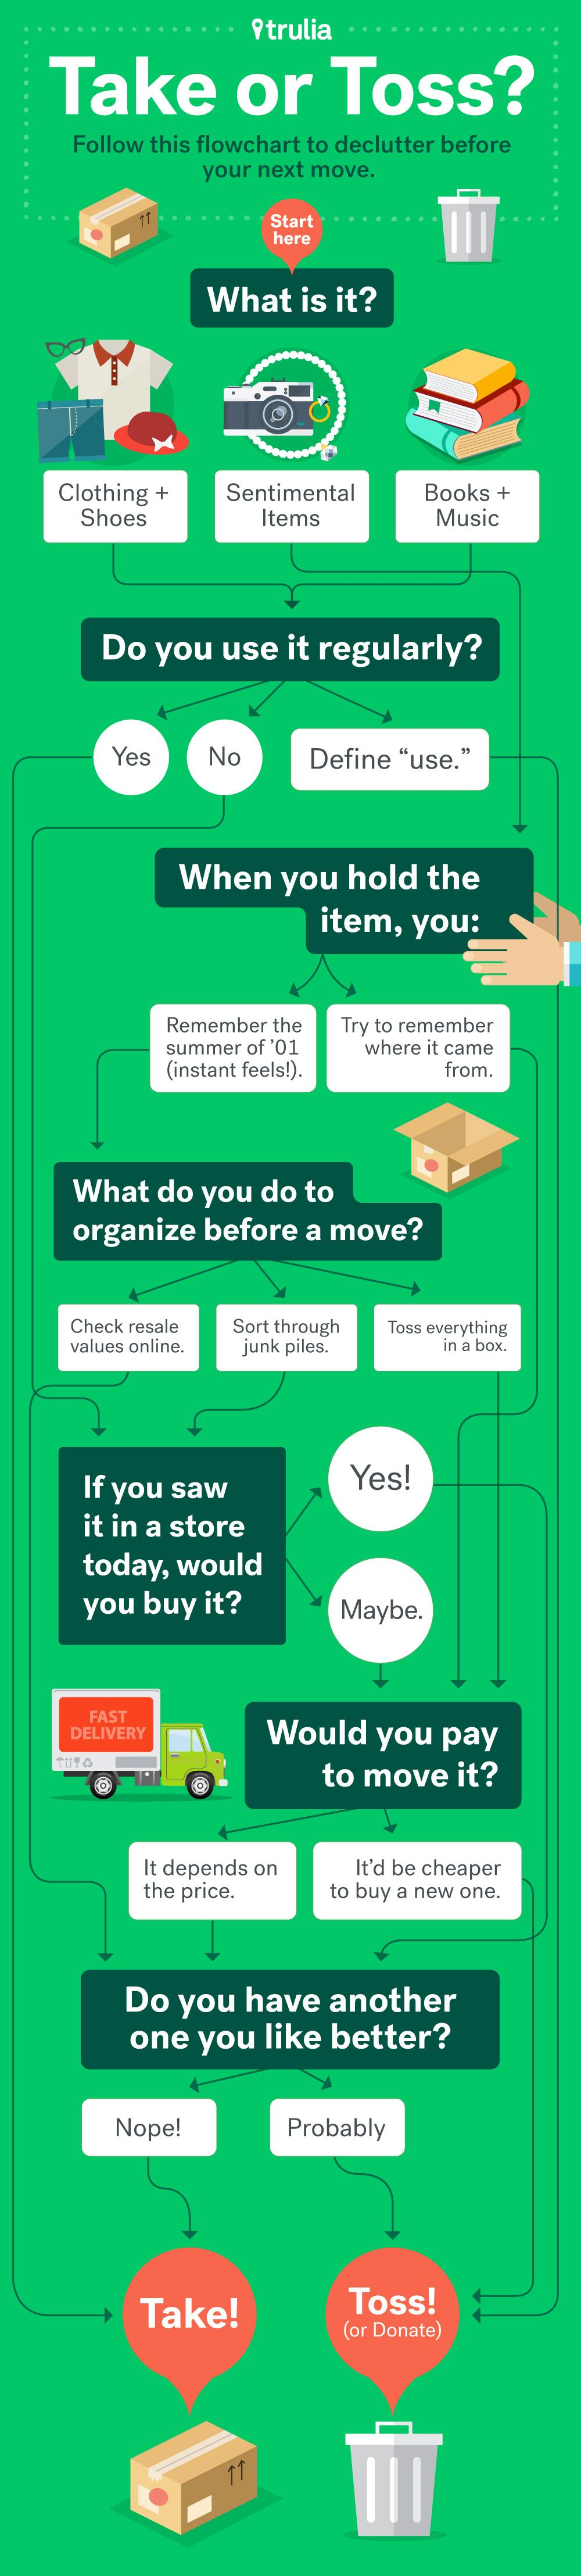 Follow These Decluttering Tips Before Moving   Life at Home   Trulia Blog. Follow These Decluttering Tips Before Moving   Life at Home